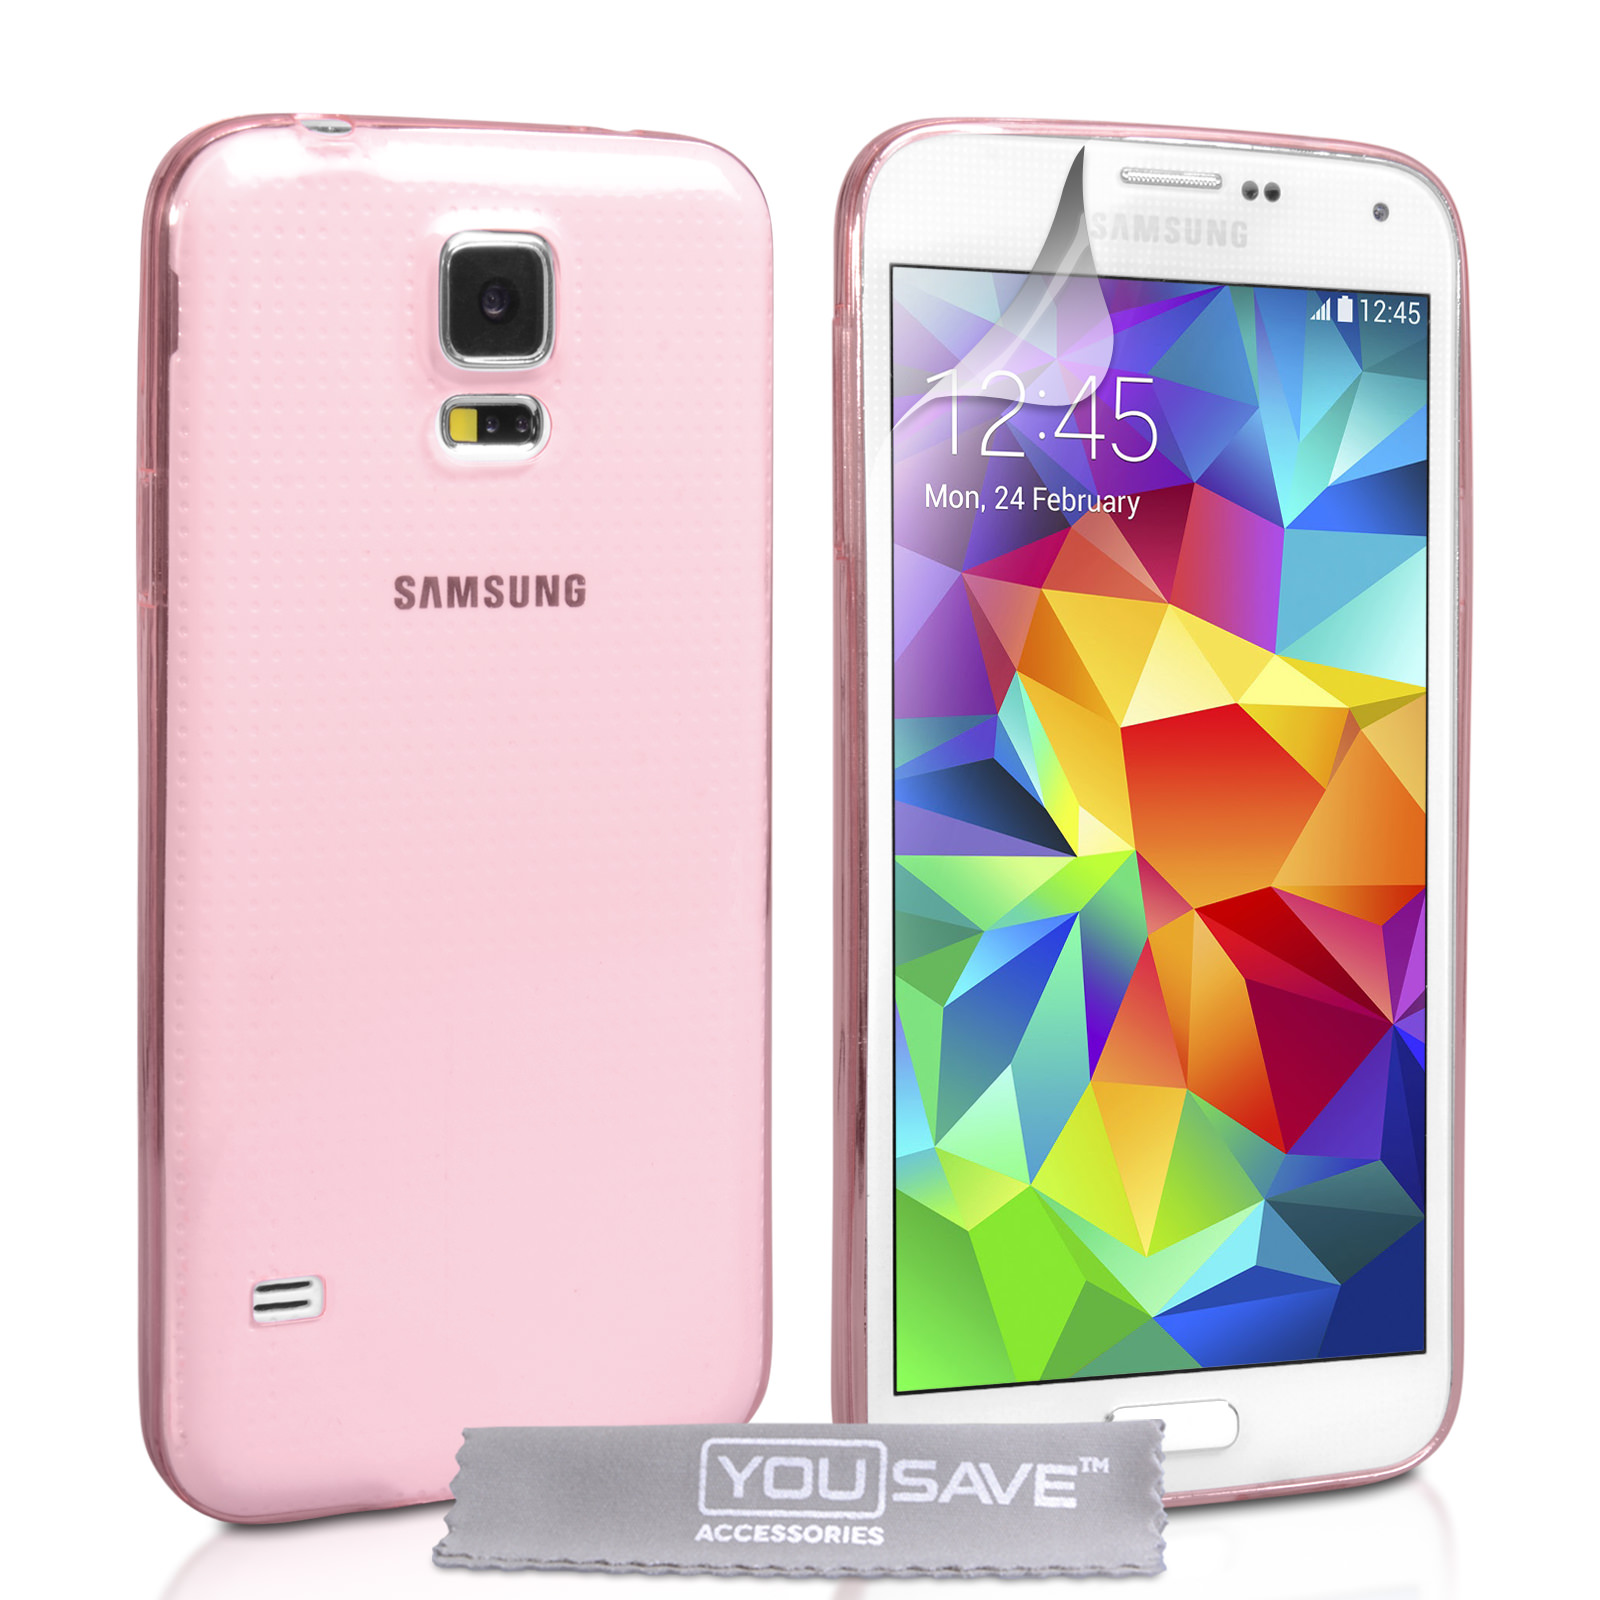 YouSave Accessories Samsung Galaxy S5 0.6mm Clear Gel Case - Pink